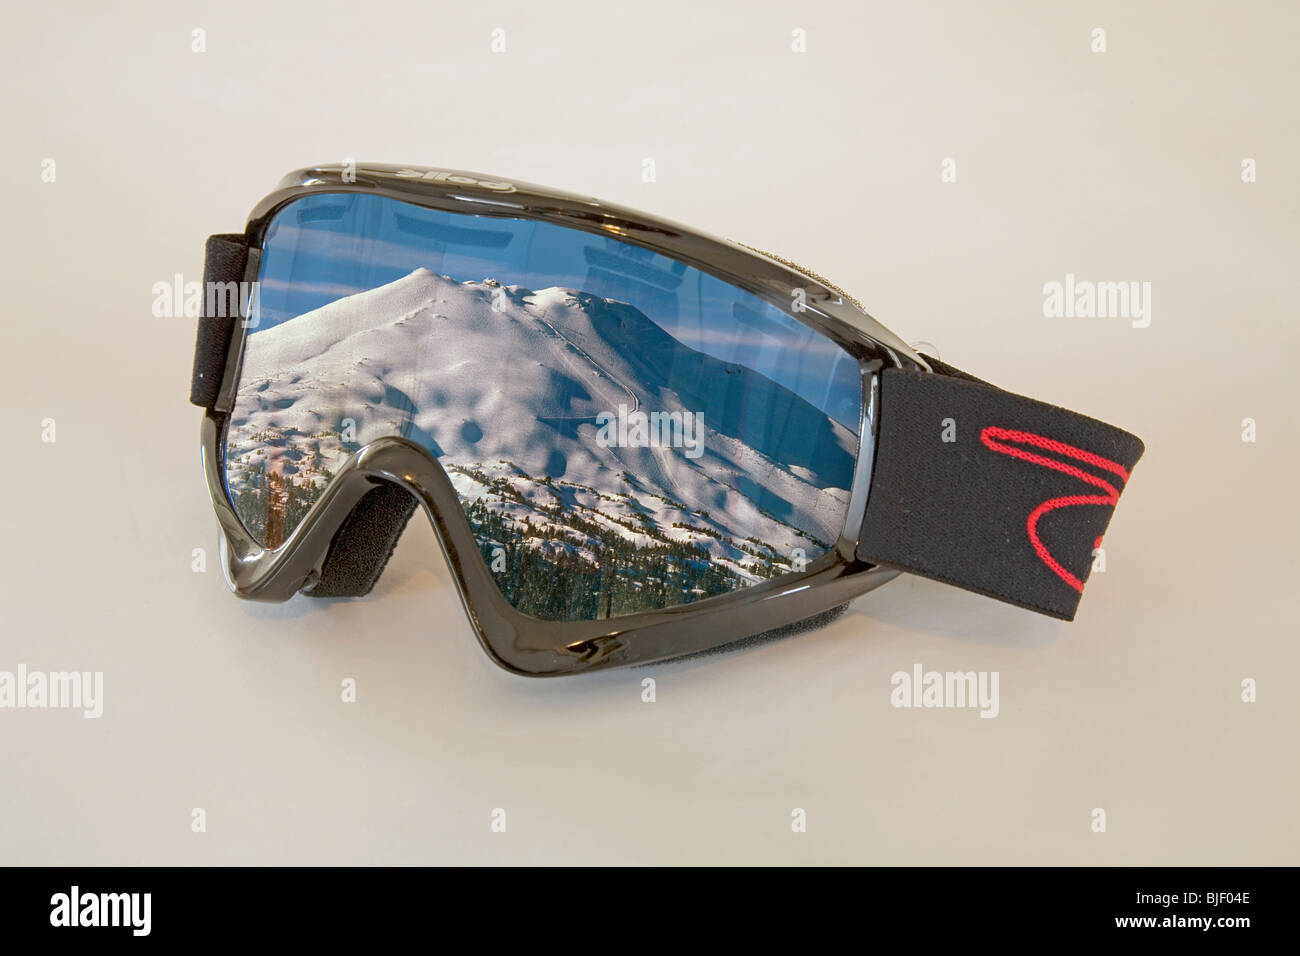 Ski goggles with the reflection of a ski resort mountain - Stock Image